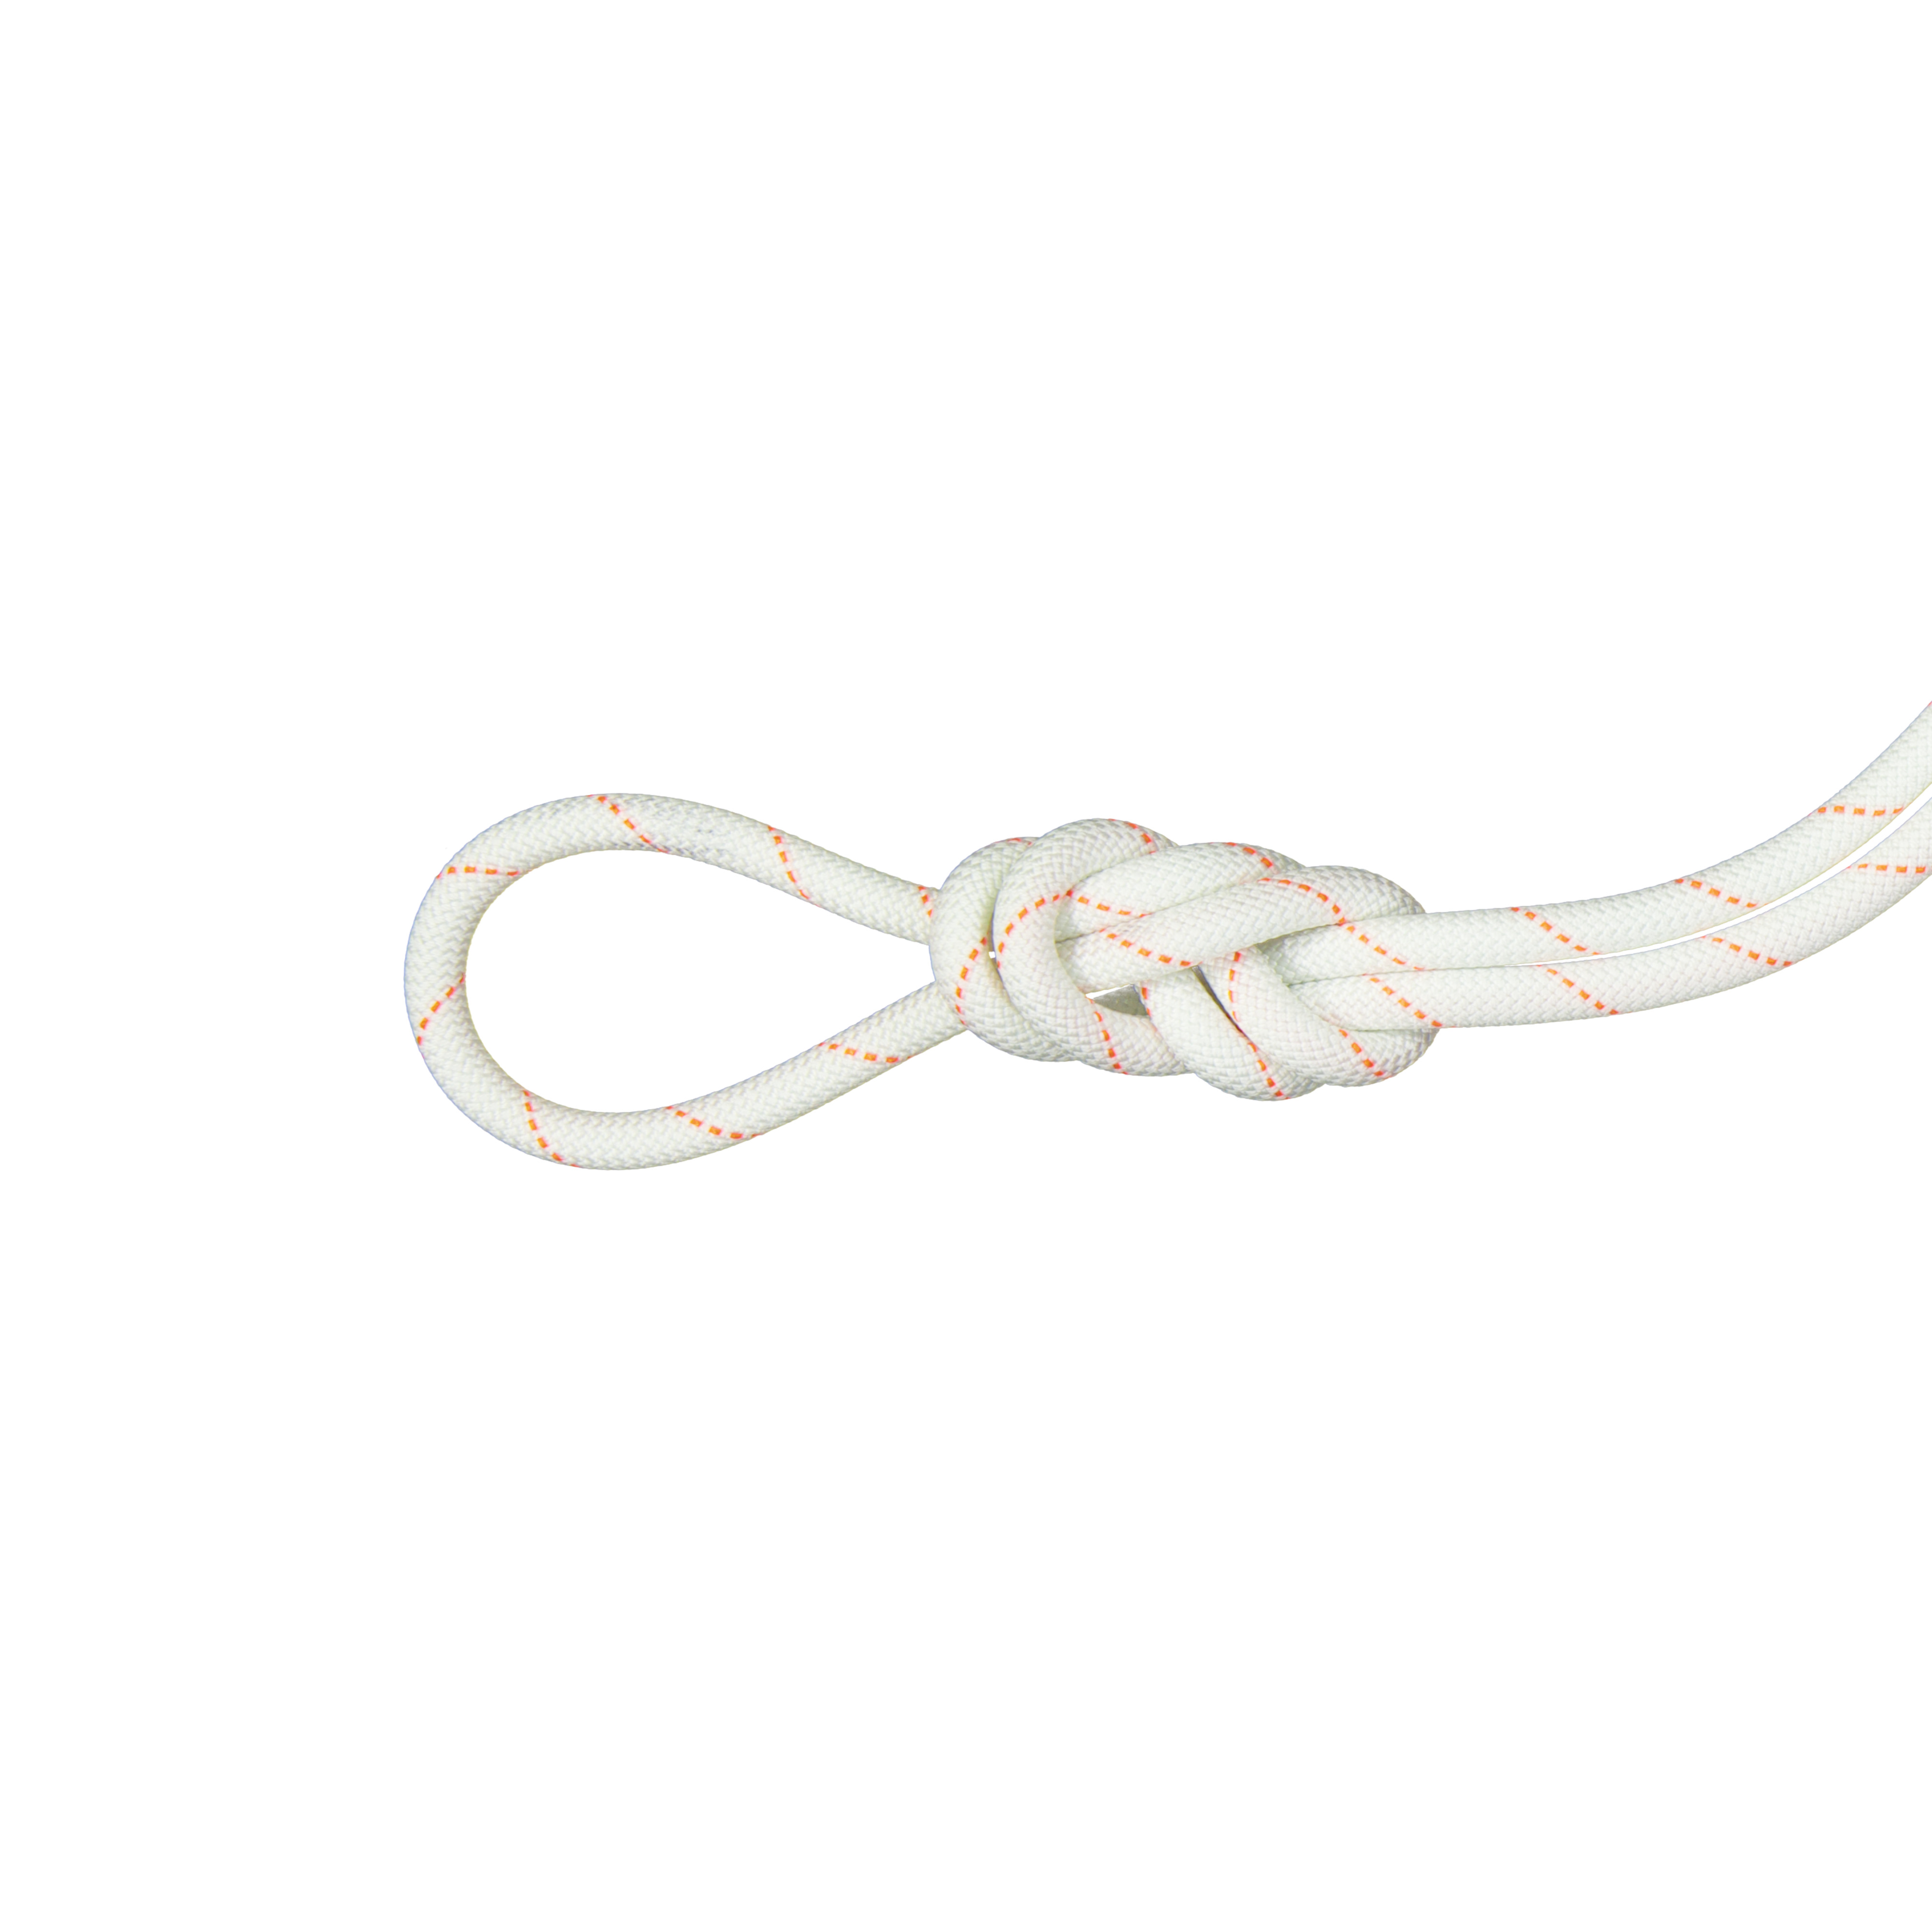 9.9 Gym Workhorse Dry Rope thumbnail